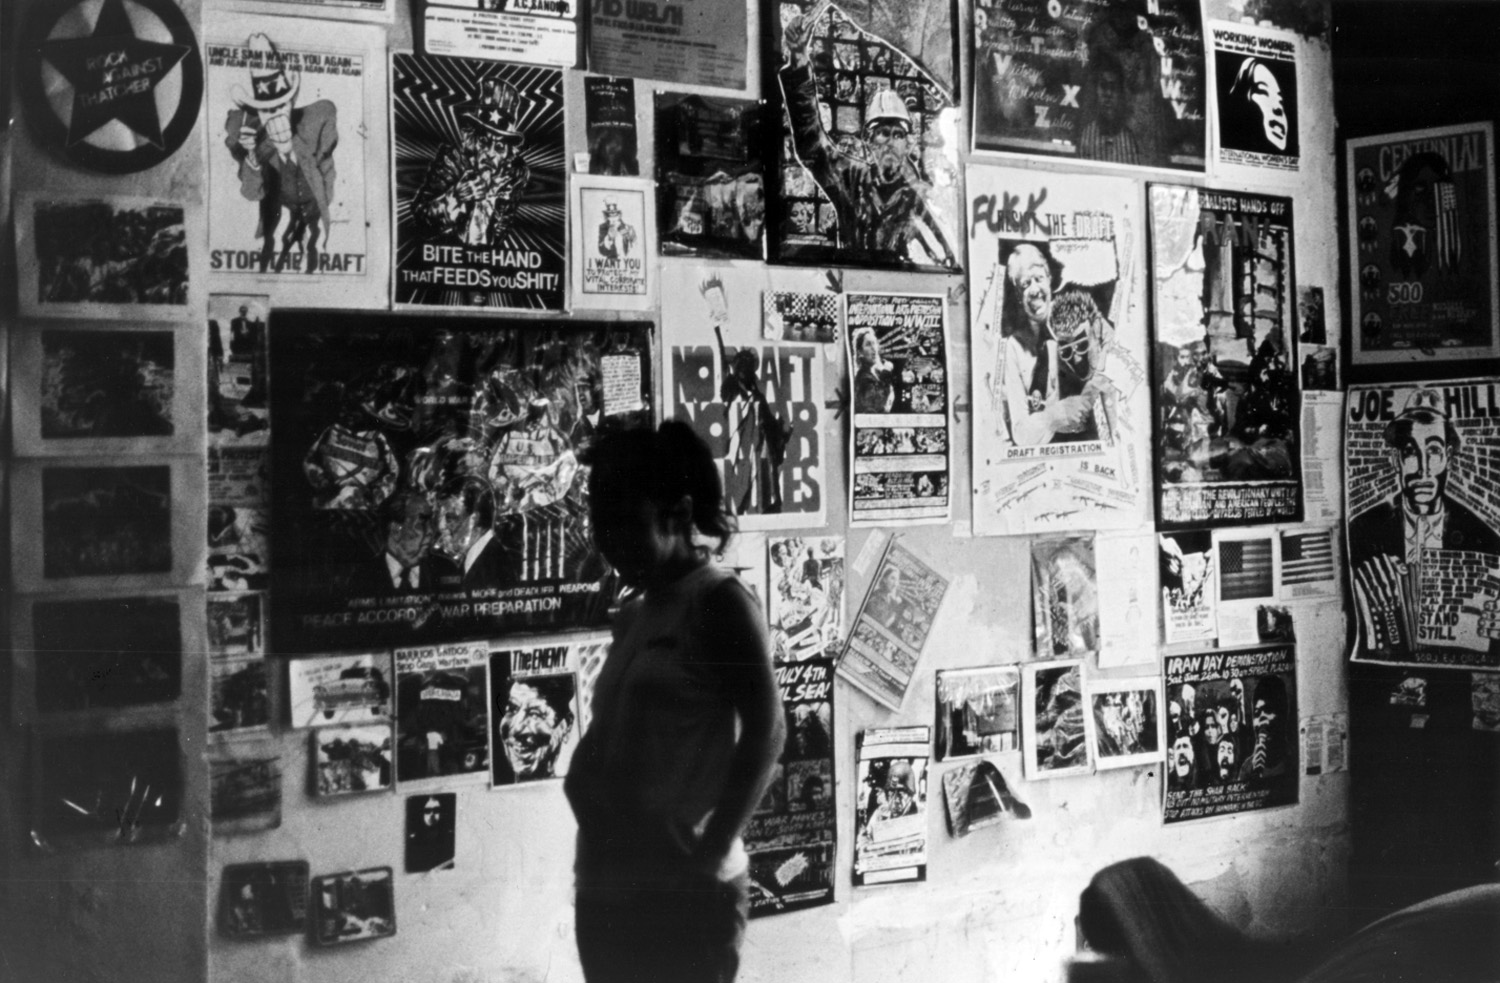 Installation view of International Workers Day show at No Rio shows numerous artworks mailed to the Poster Brigade for their May 1, 1980 show in San Francisco